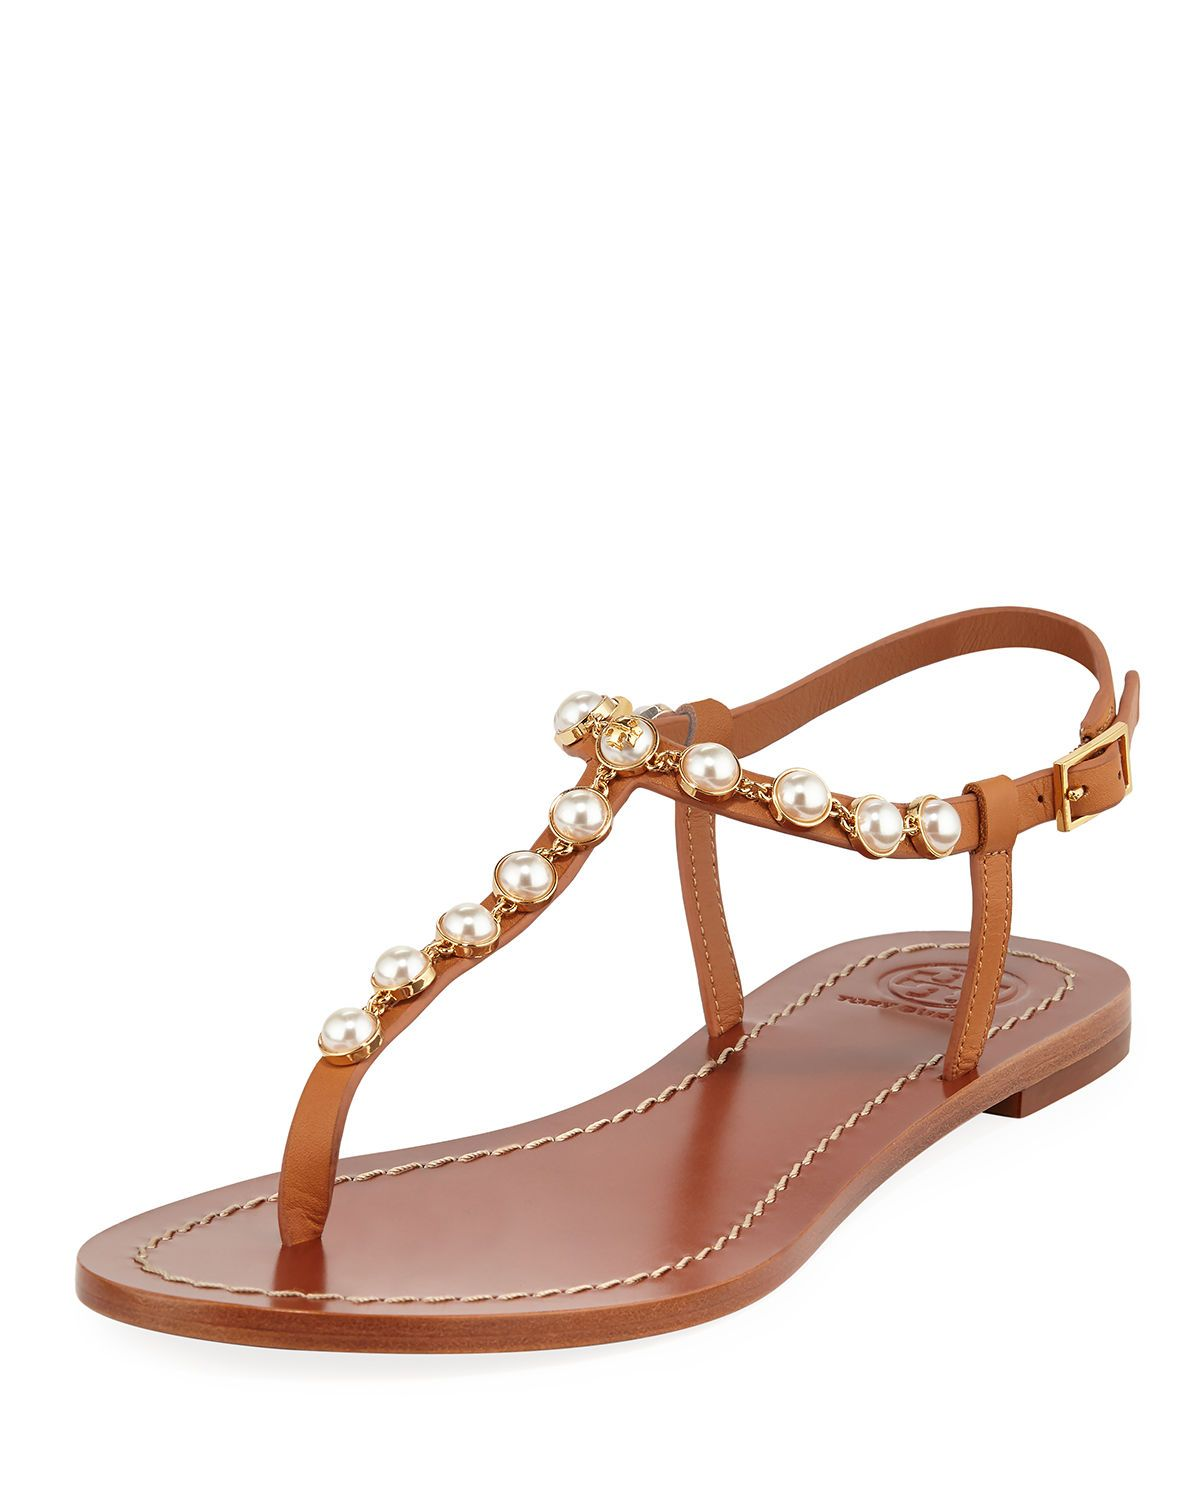 fca021e95a68 Tory Burch Emmy Pearly Beaded Flat Sandals in 2019